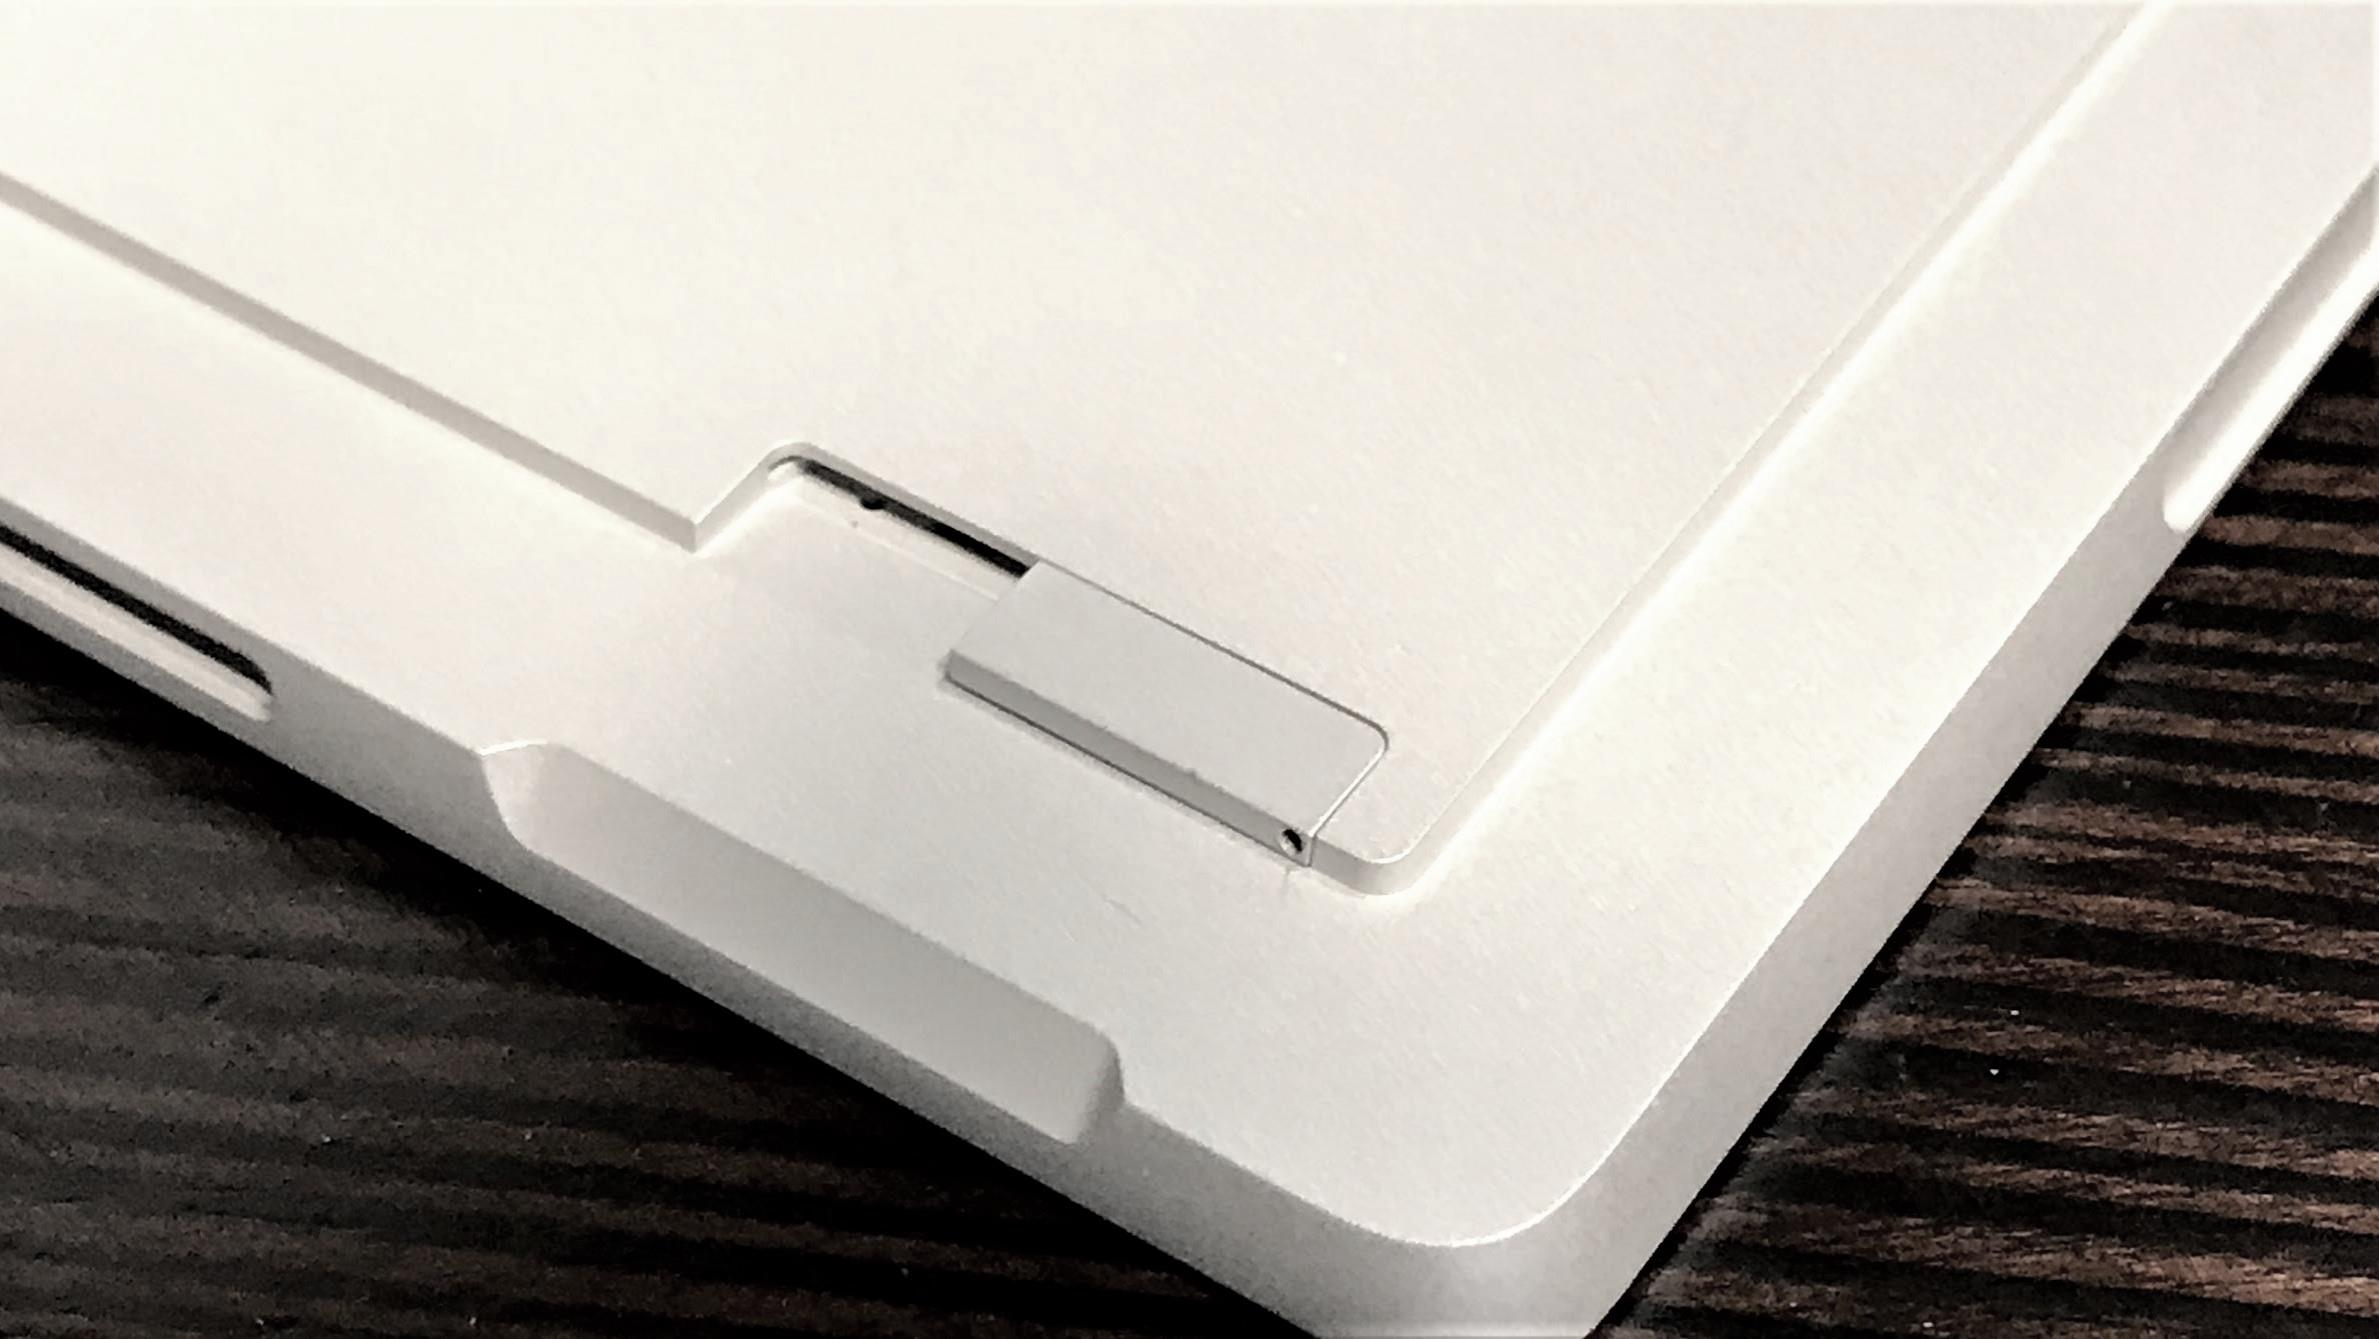 The Surface Pro with LTE's SIM tray is just next to the microSD slot.